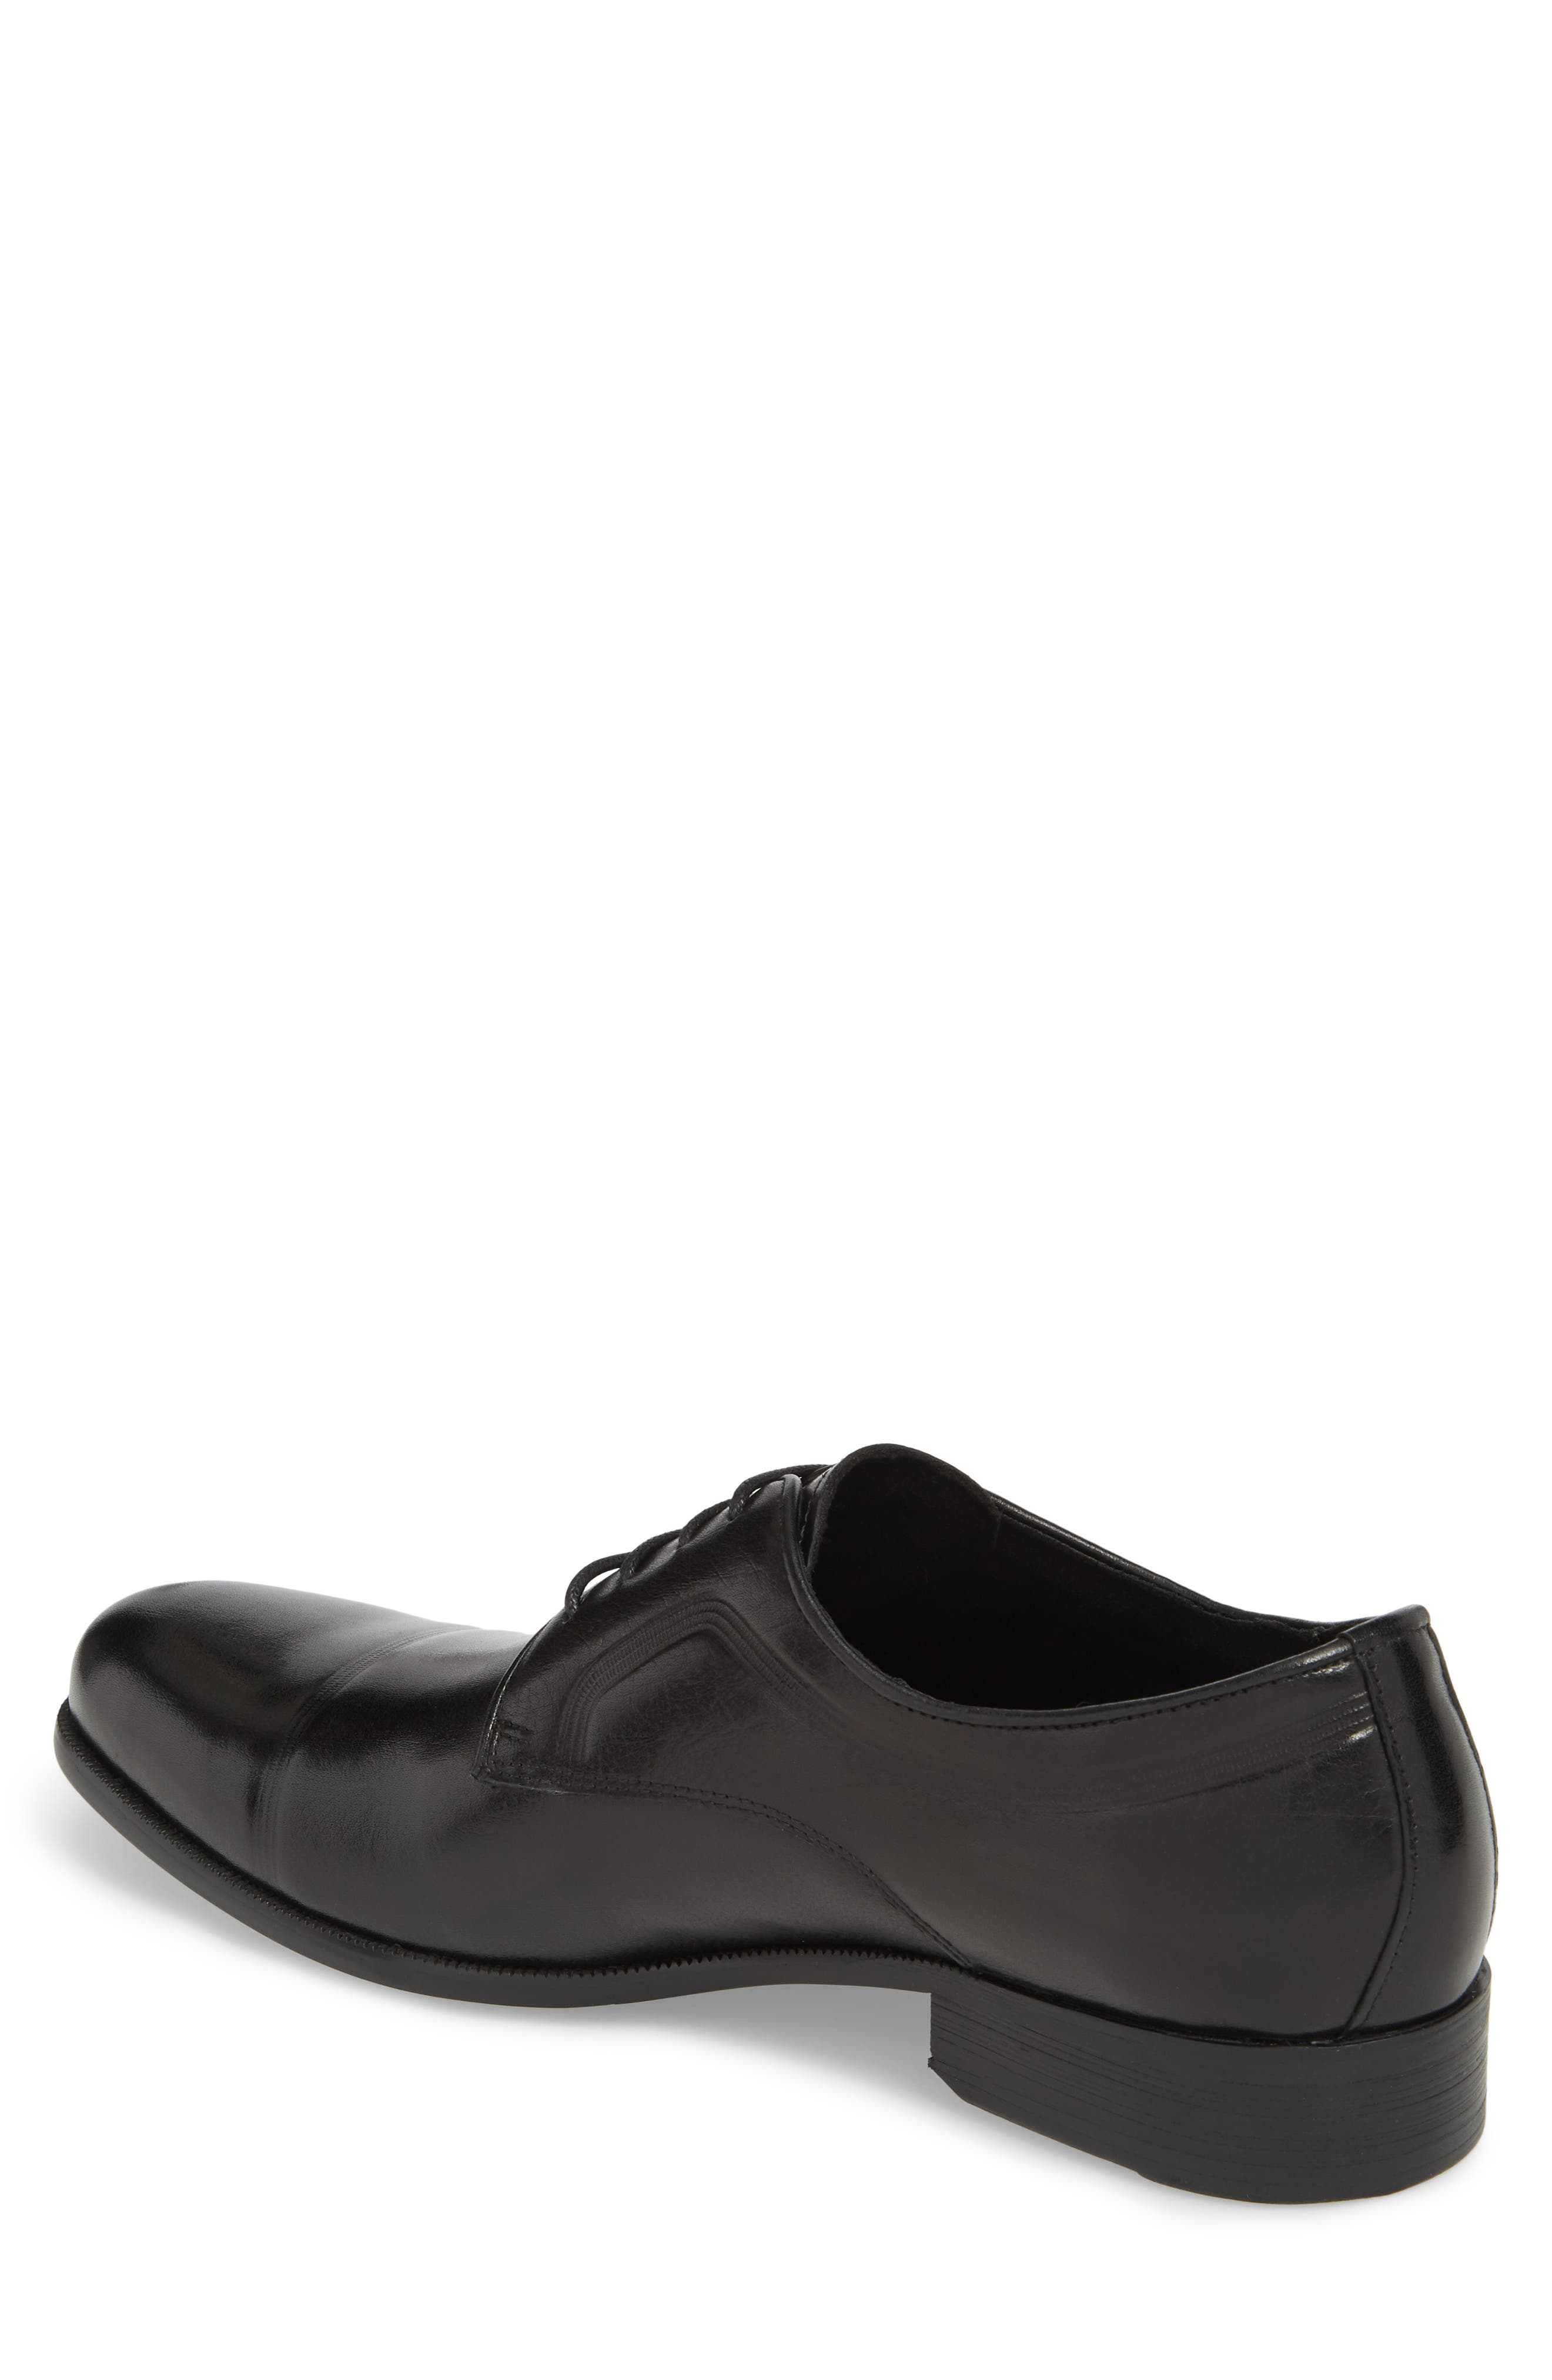 Chief Cap Toe Derby,                             Alternate thumbnail 2, color,                             Black Leather